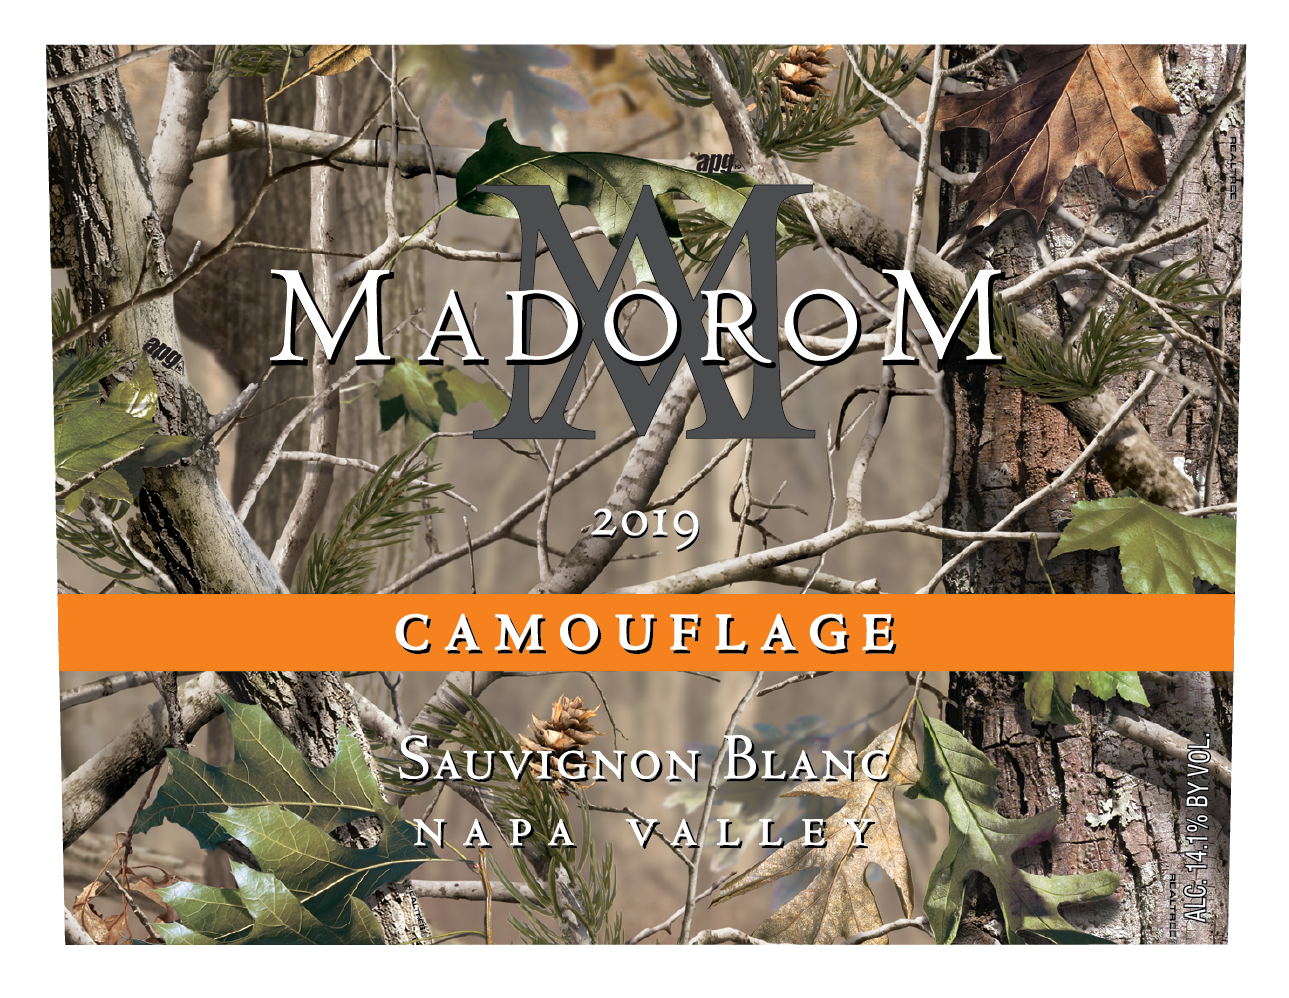 Product Image for 2019 MadoroM Napa Valley Camouflage Sauvignon Blanc